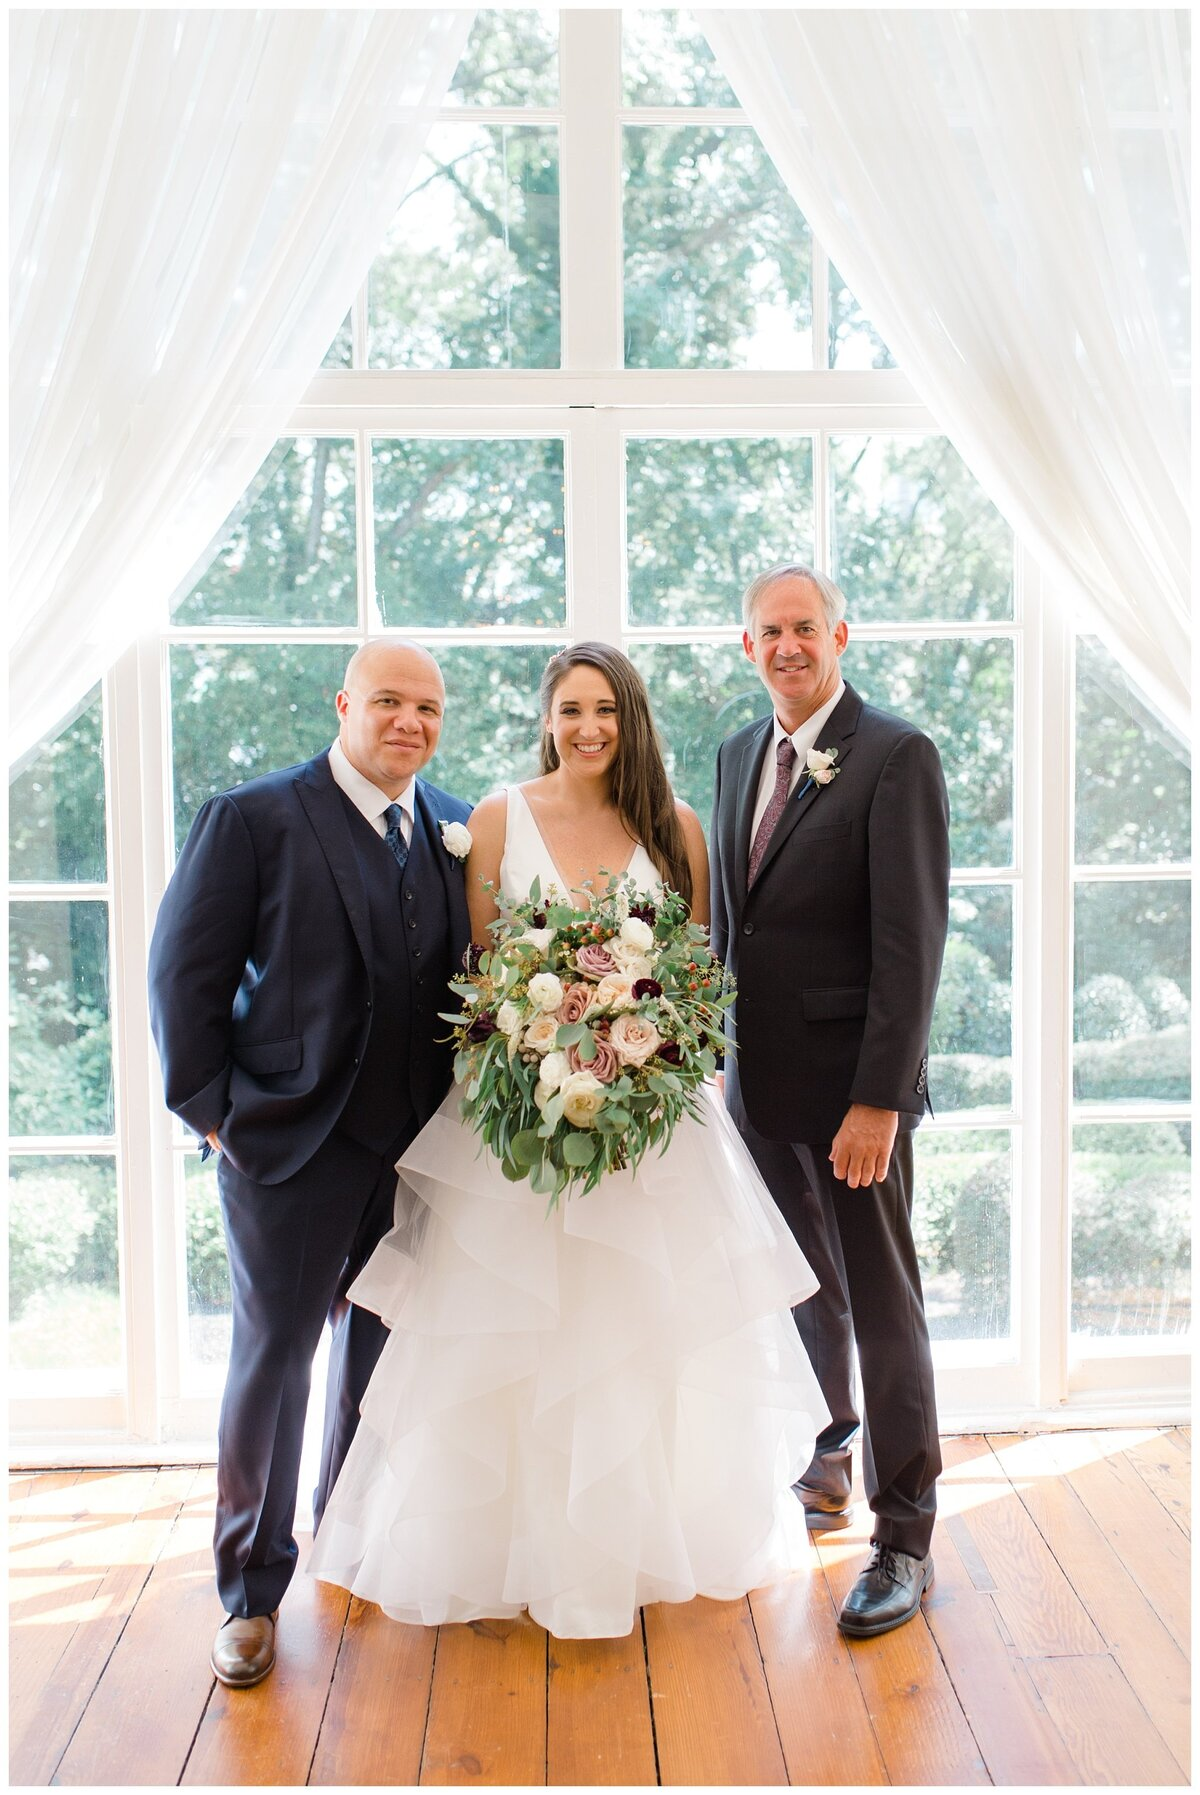 harkins-wedding-atlanta-georgia-photographer-41